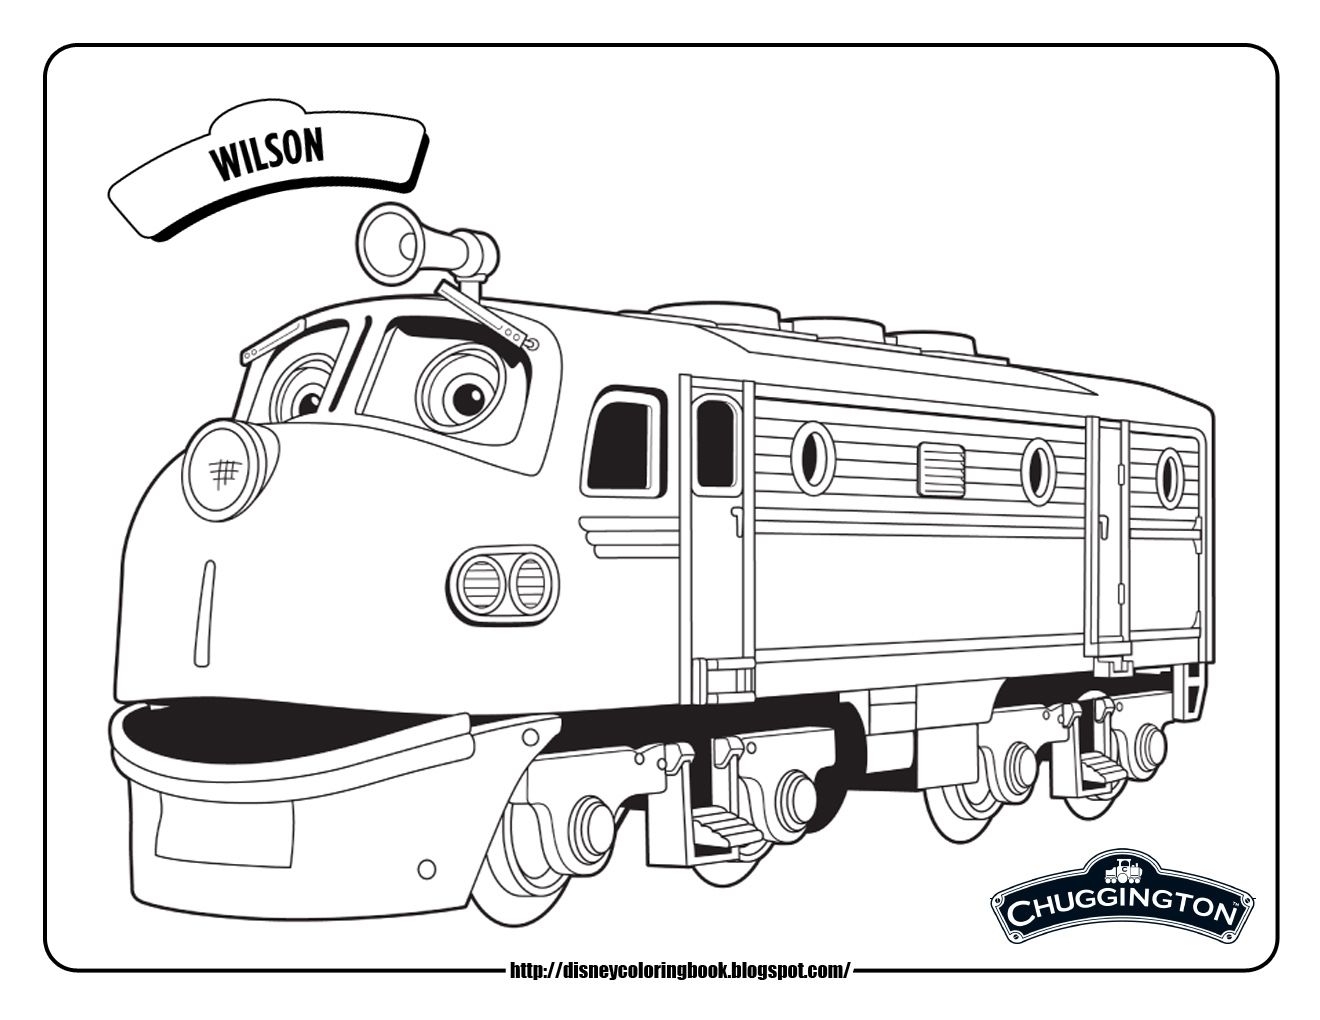 chuggington coloring pages chuggington wilson train coloring pages - Chuggington Wilson Coloring Pages